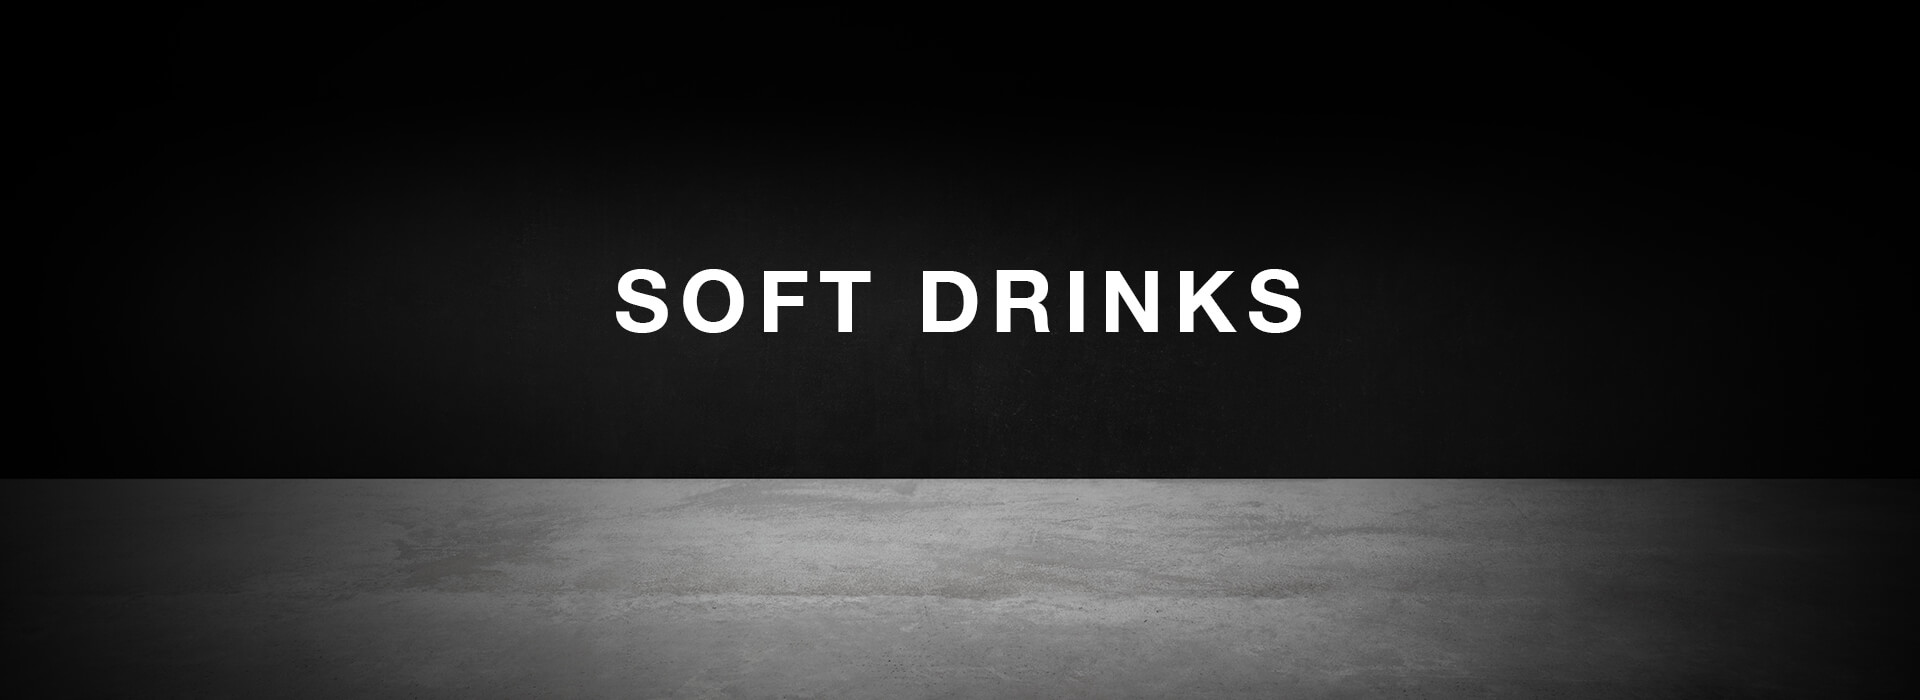 Liquor and soft drinks for sale online